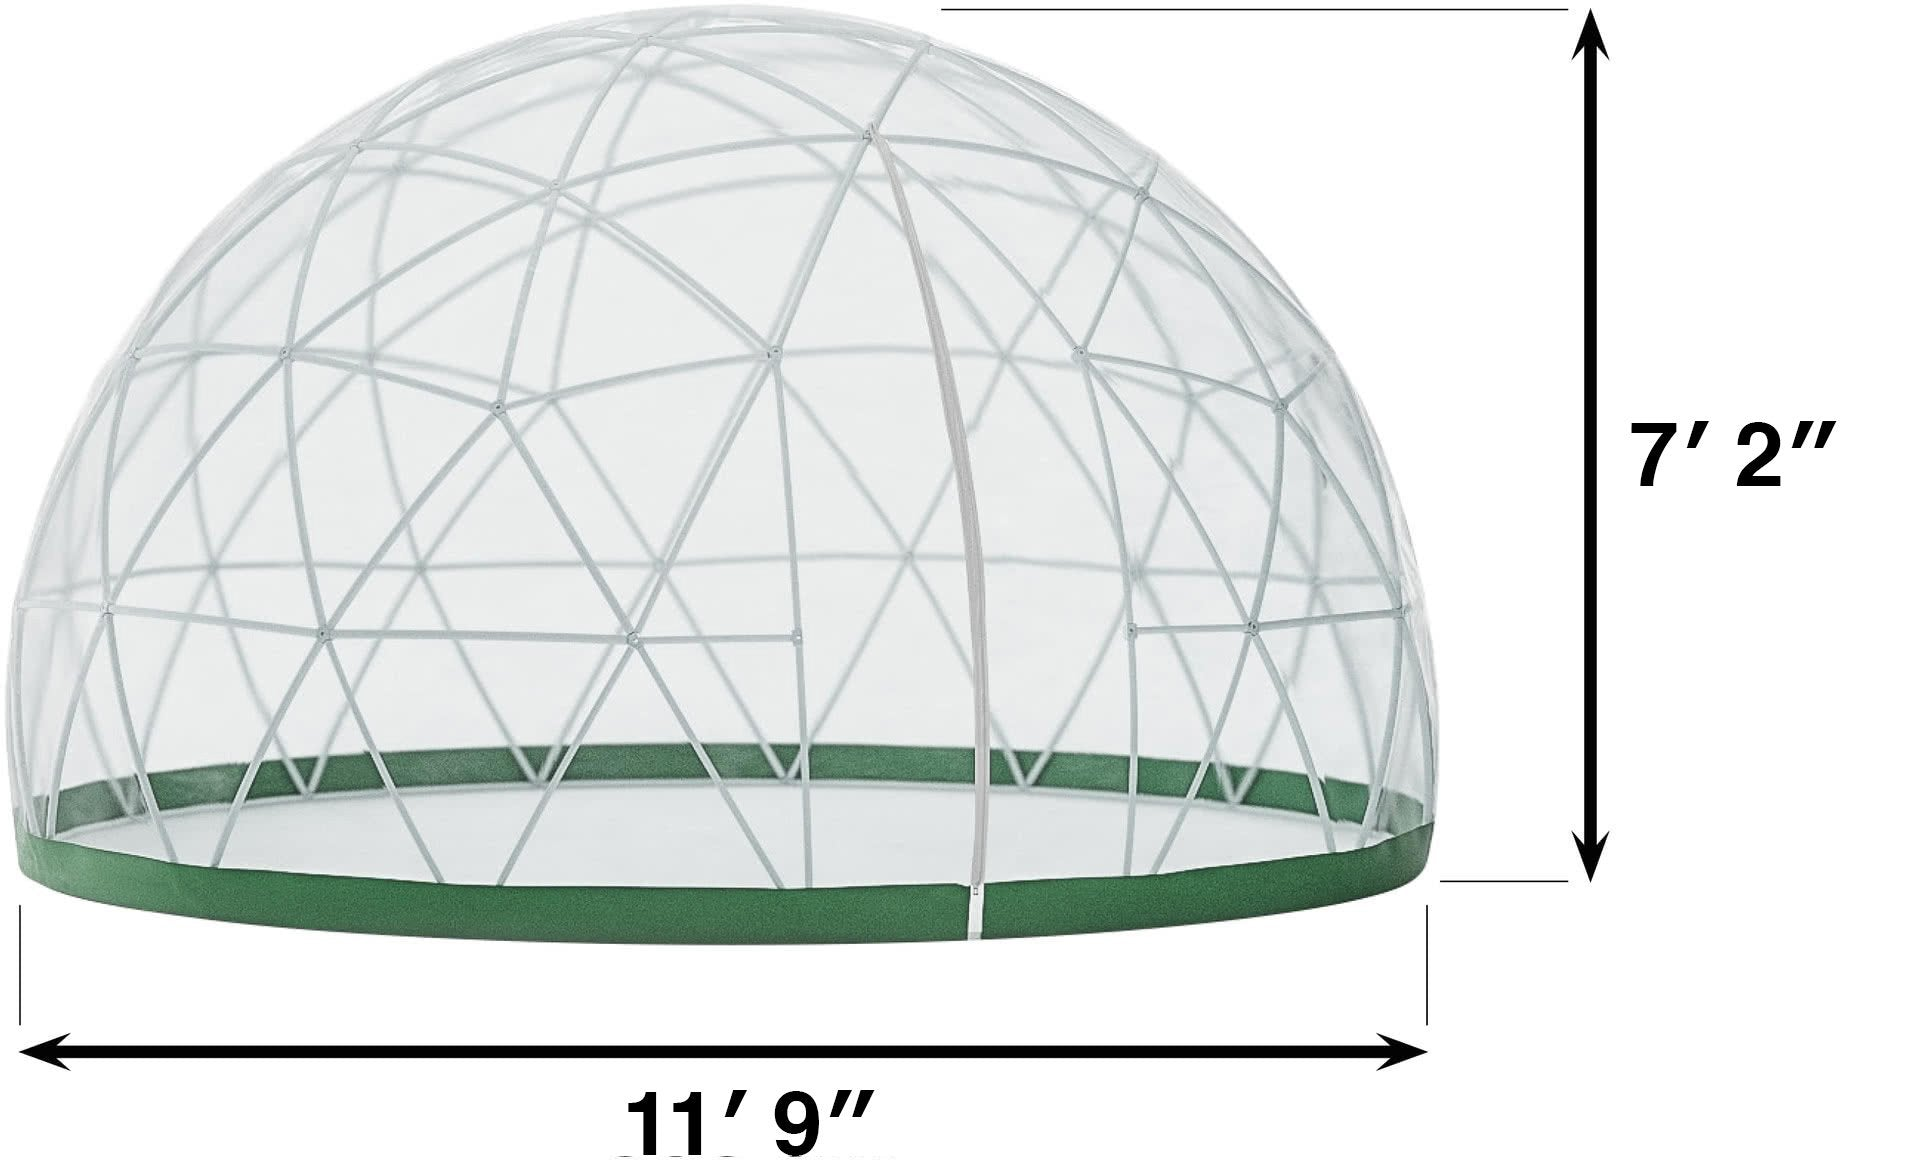 Gardenigloo has a diameter of 11′ 9″ and a height of max. 7′ 2″. Two zipper screened vents ensure optimal airflow.